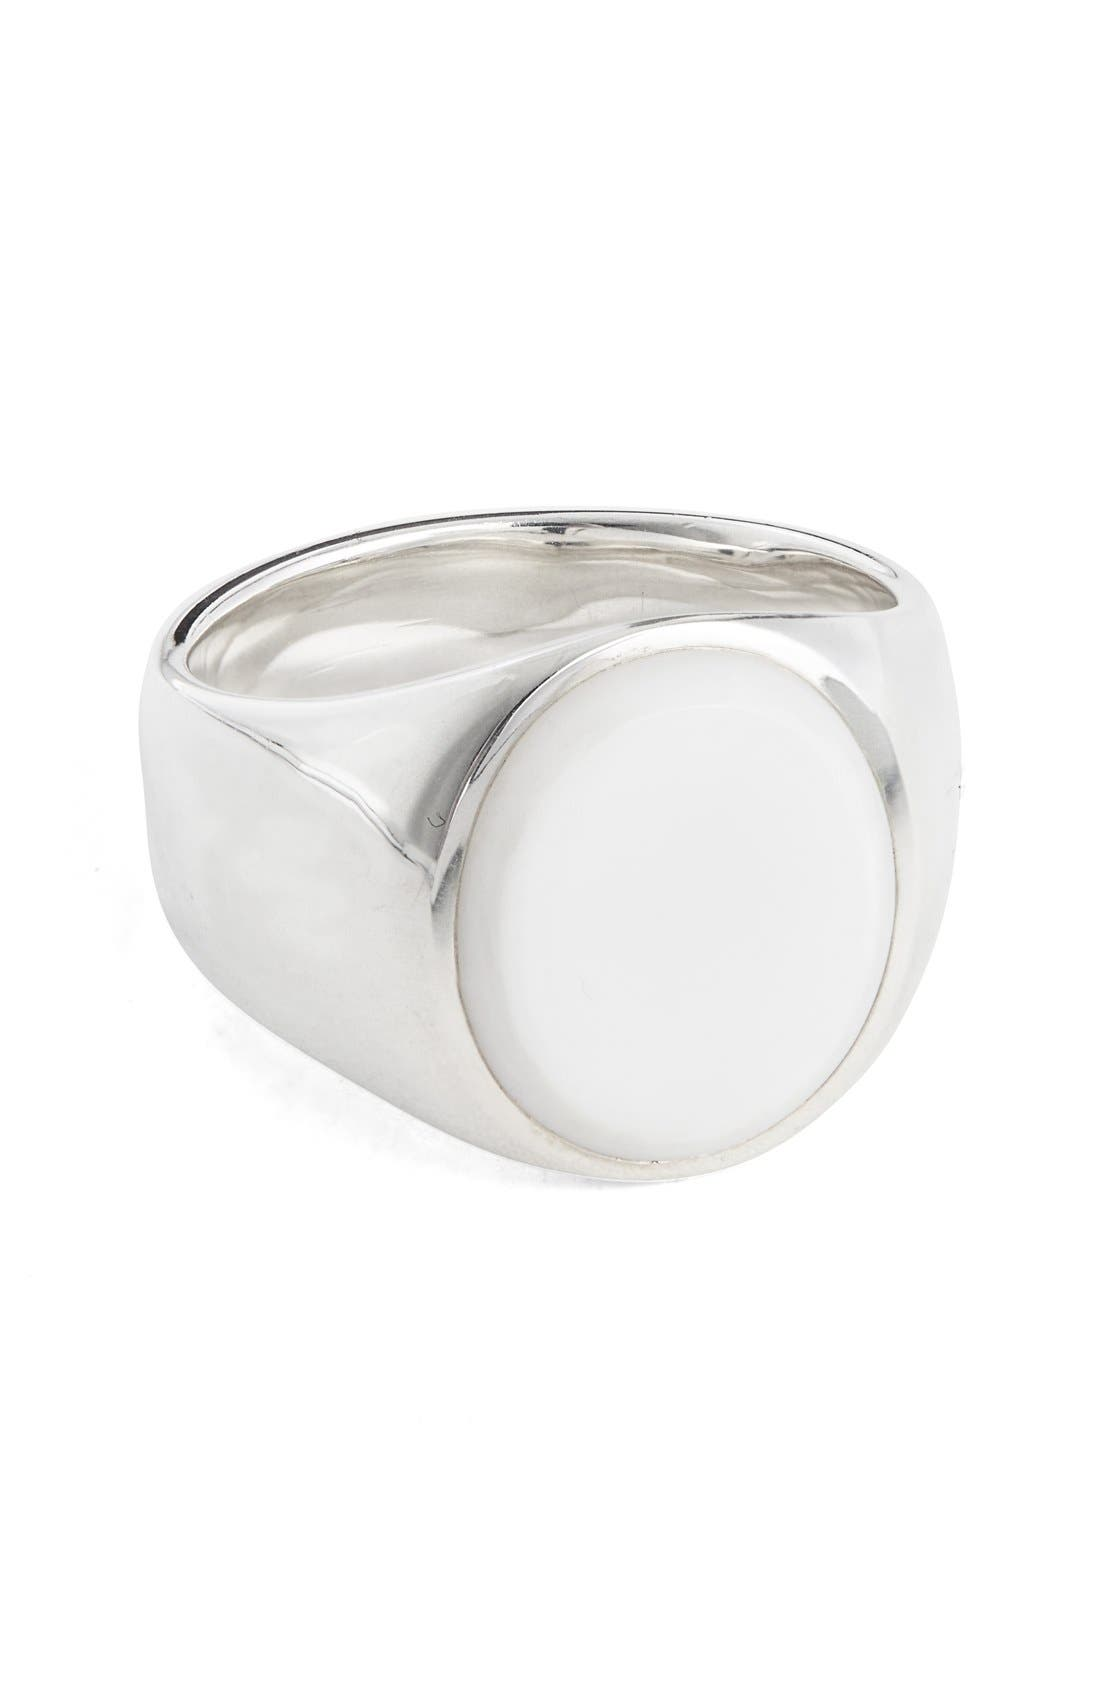 TOM WOOD Patriot Collection Oval White Agate Signet Ring